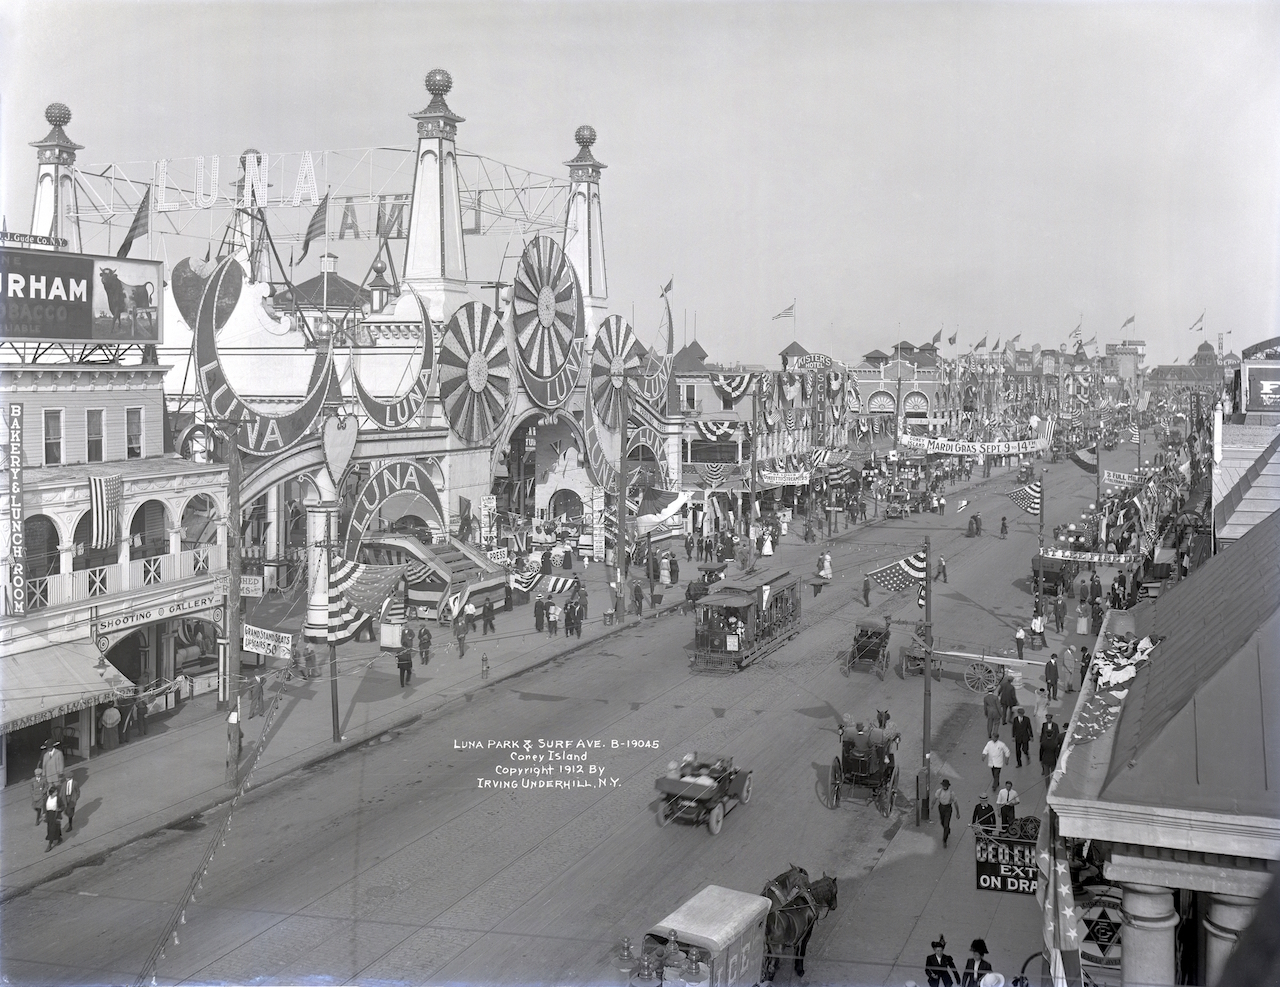 Irving Underhill (American, 1872ñ1960). Luna Park and Surf Avenue, Coney Island, 1912. Gelatin dry glass plate negative Brooklyn Museum, Brooklyn Museum/Brooklyn Public Library, Brooklyn Collection, 1996.164.8-B19045. (Photo: Althea Morin, Brooklyn Museum)